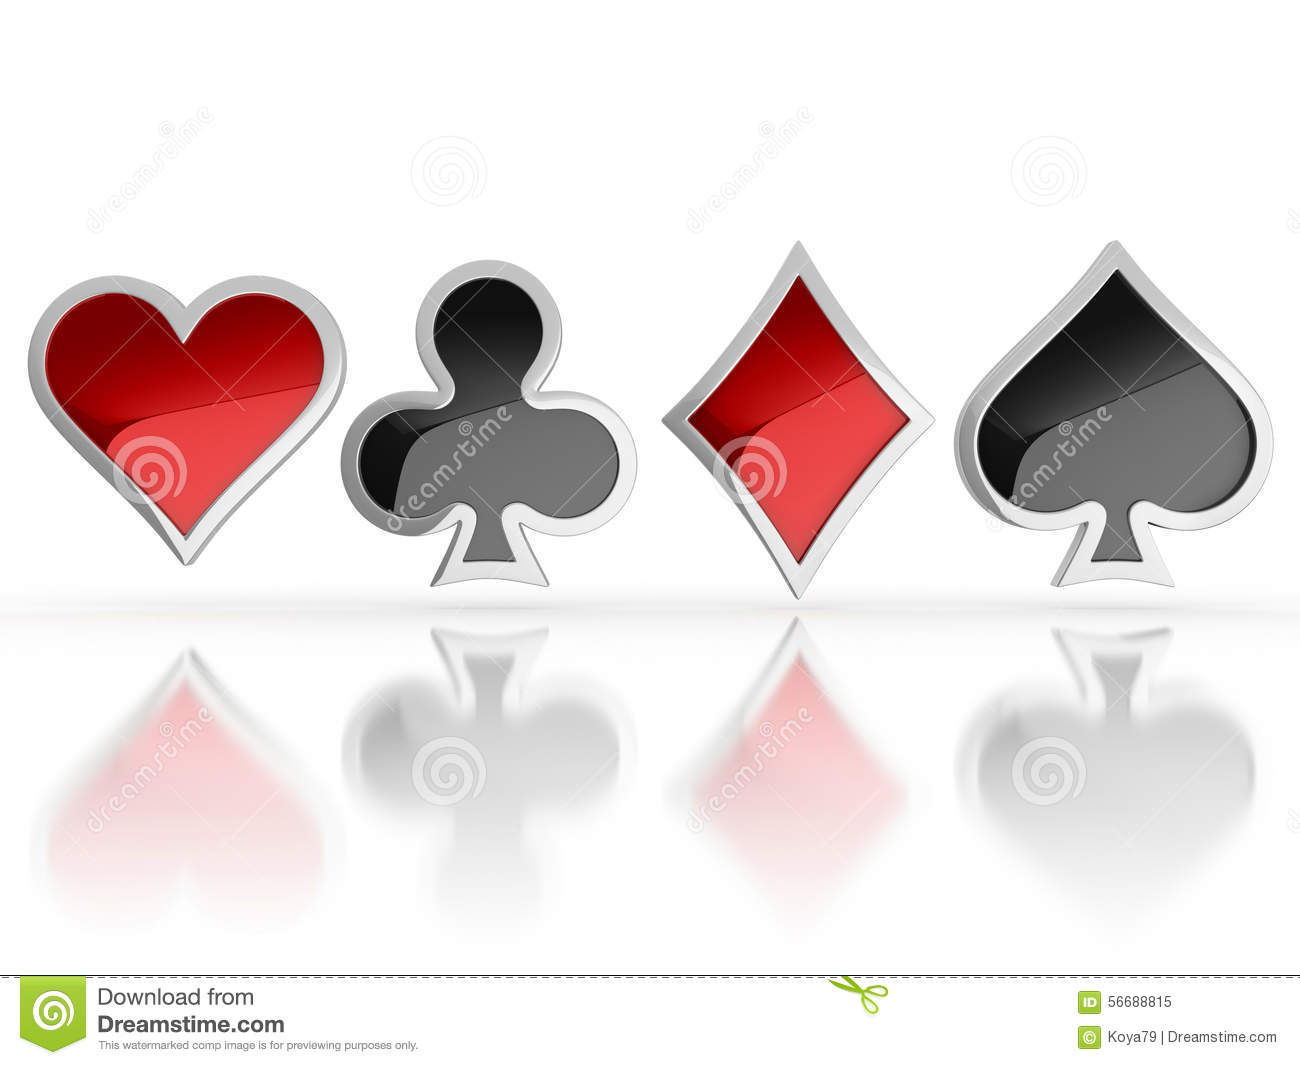 Playing cards symbols heart club diamond and spade 3d icons playing cards symbols heart club diamond and spade 3d icons biocorpaavc